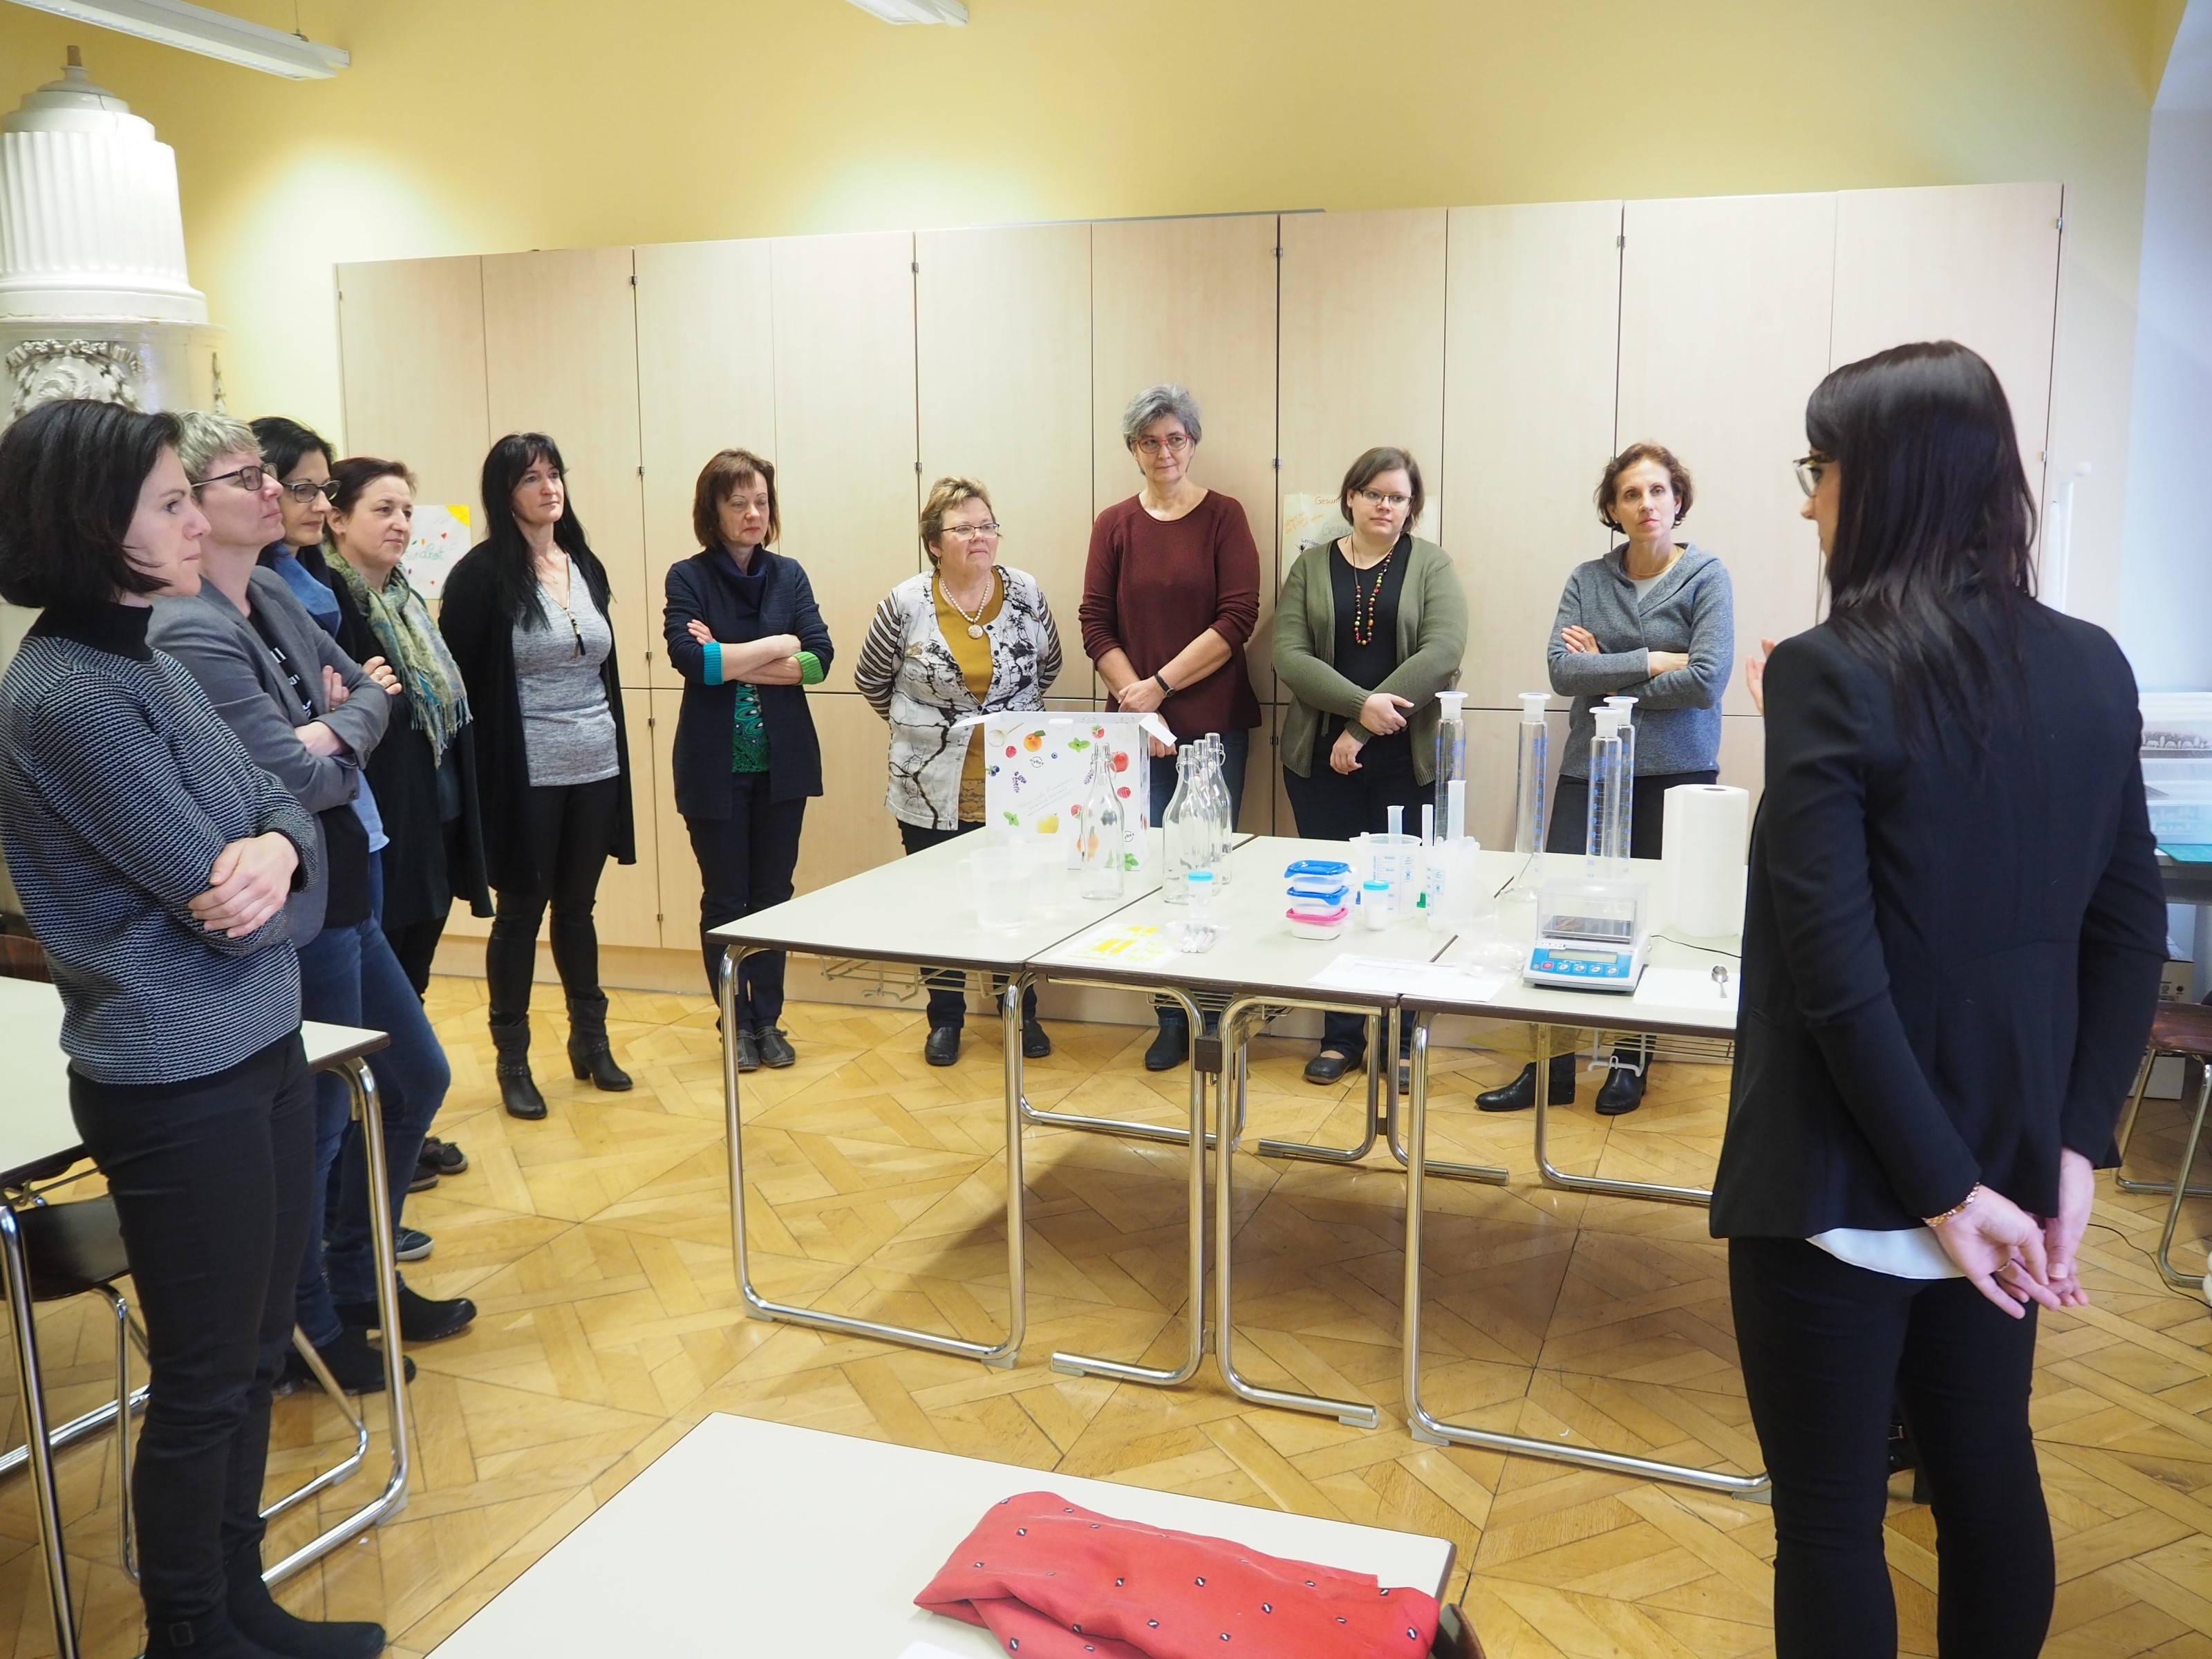 Sensorikworkshop